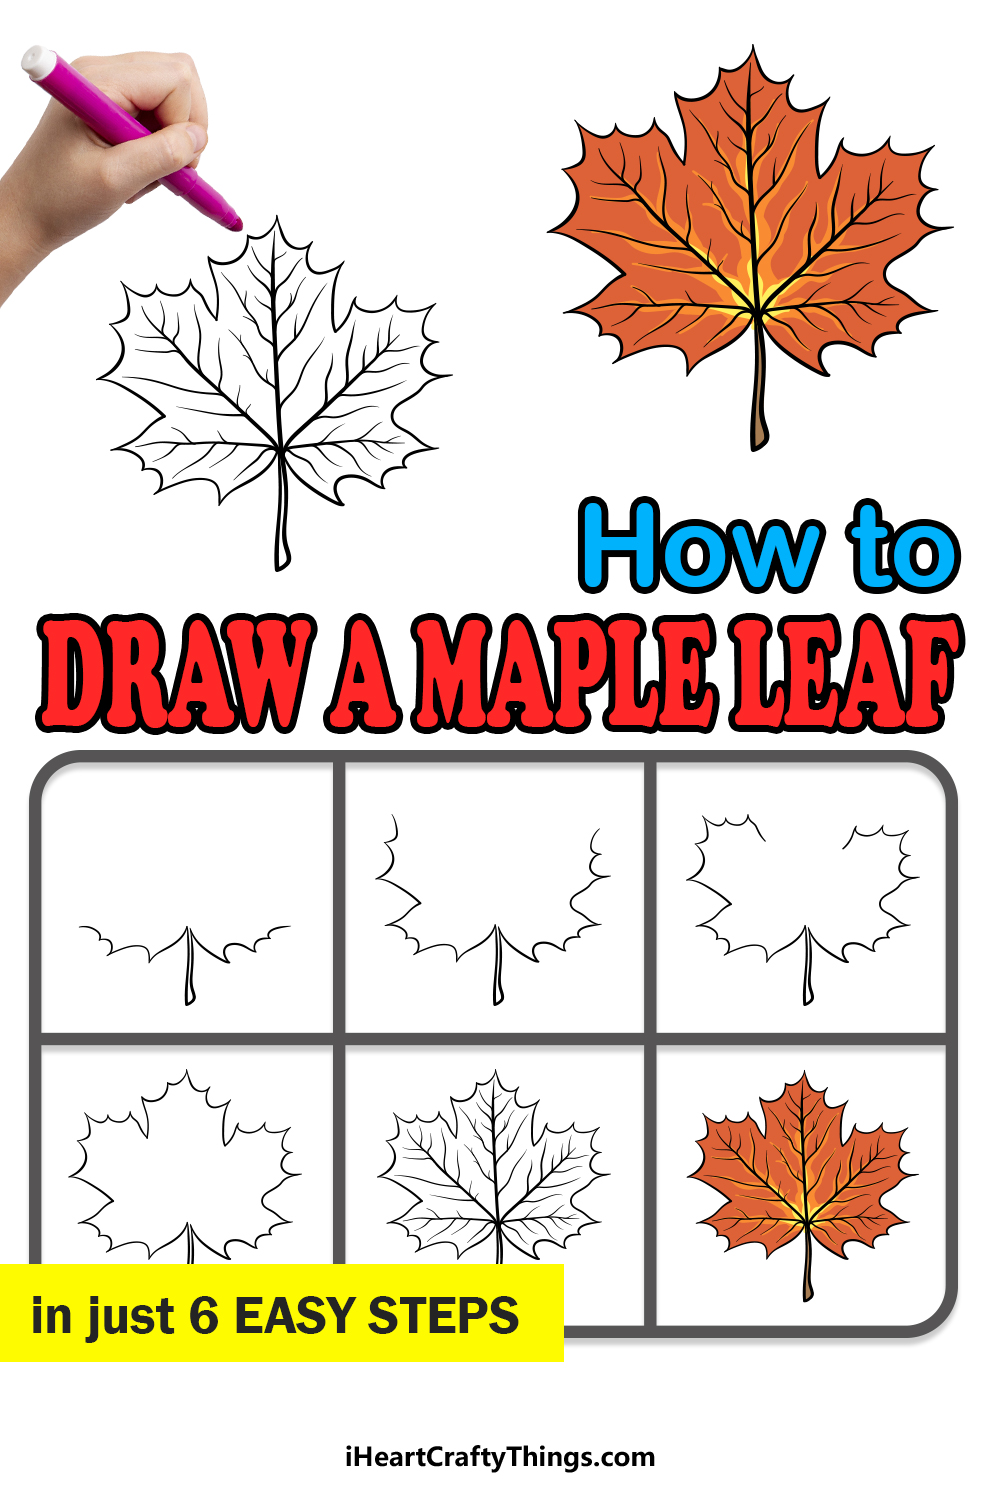 how to draw a maple leaf in 6 easy steps